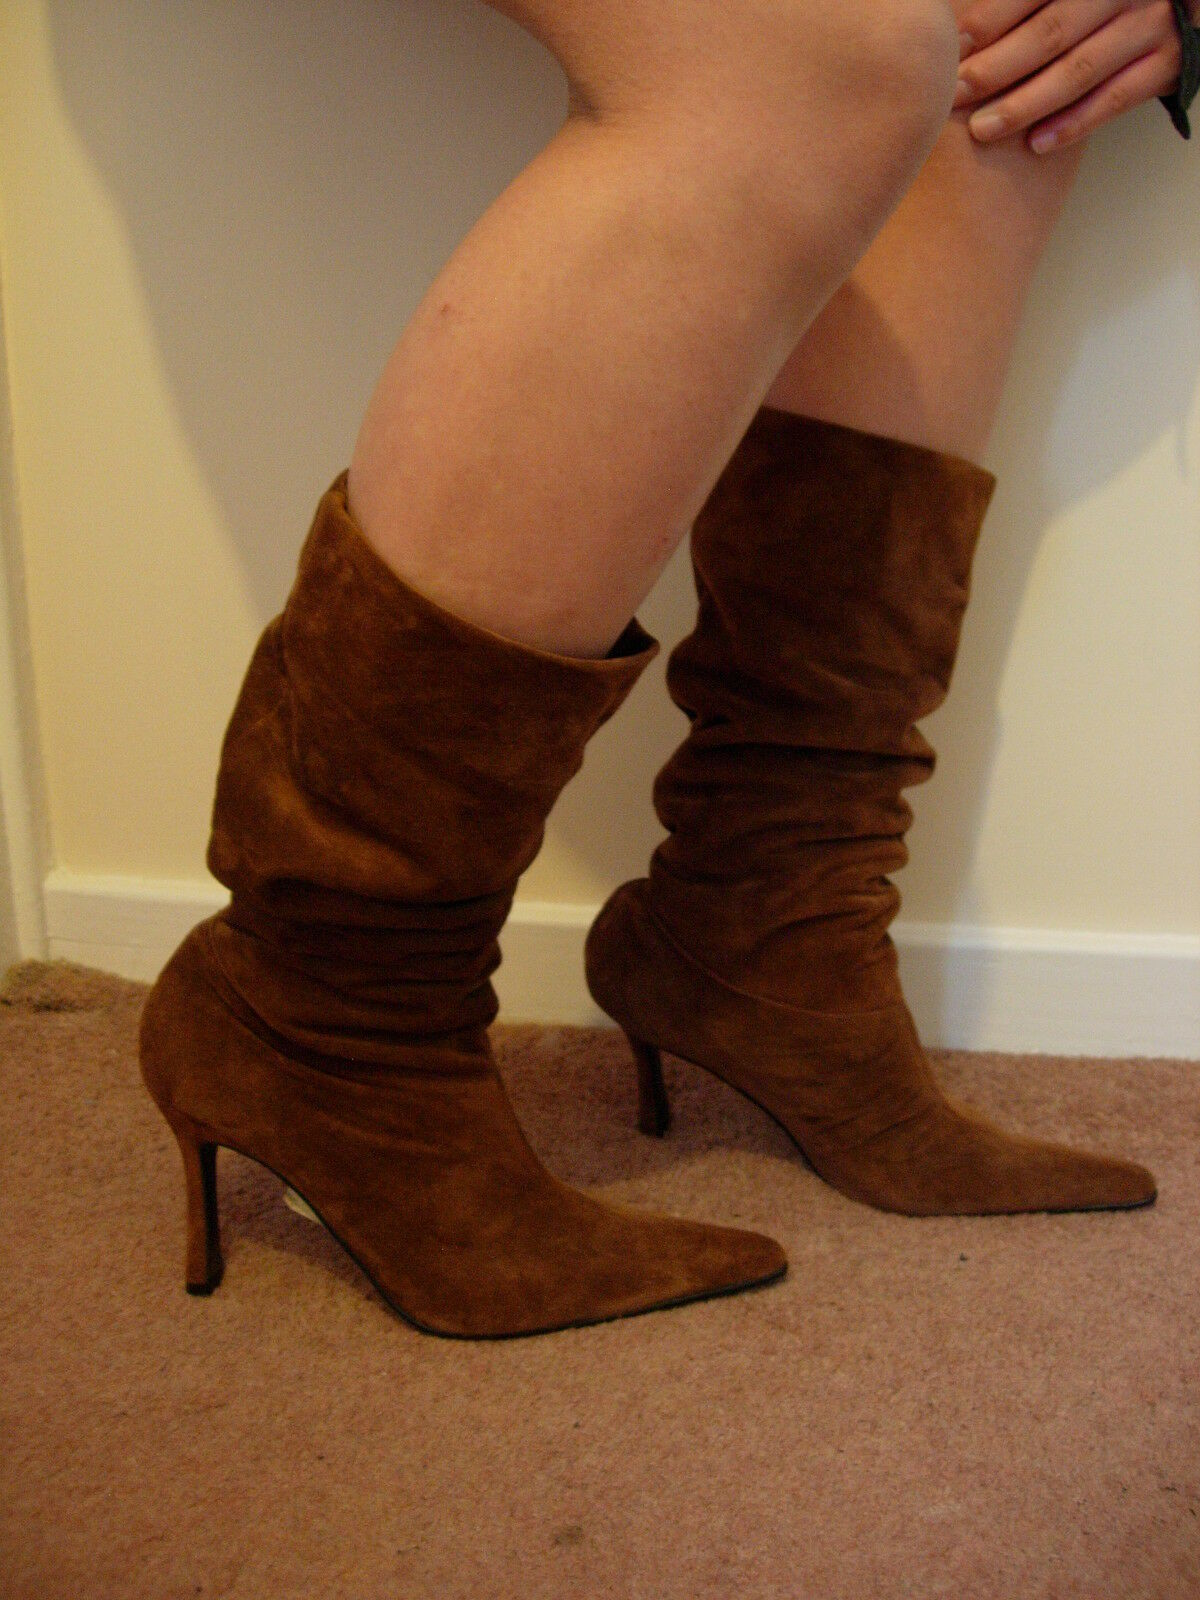 Shellys elegant Braun suede Leder slouch stiletto calf boots pointed toe 80s